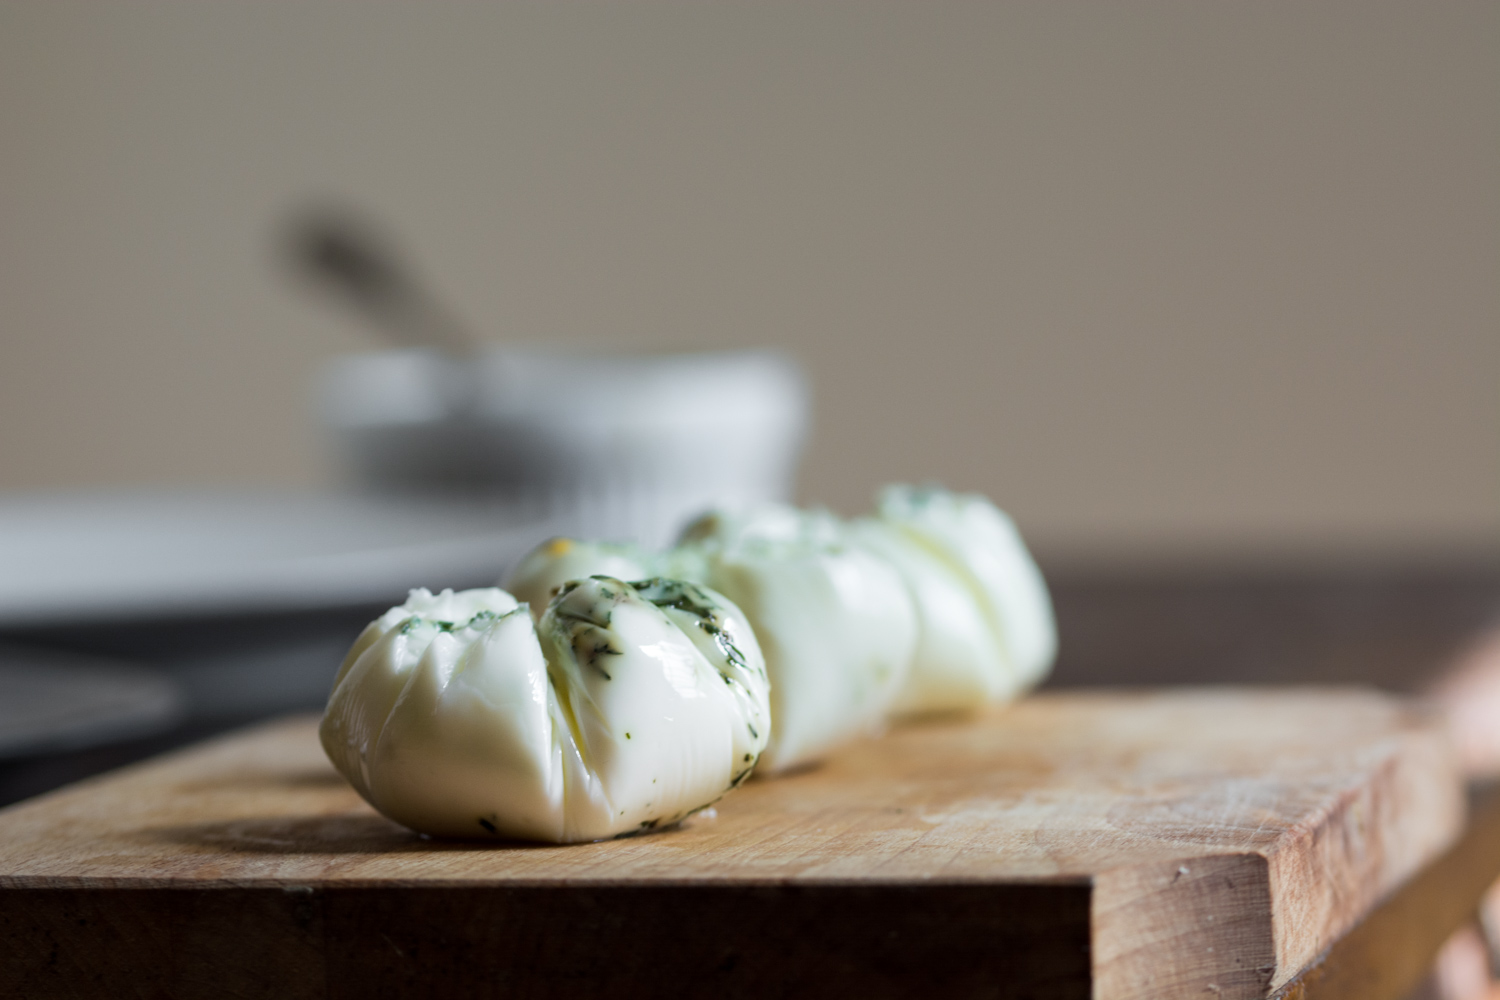 Poached herb egg whites